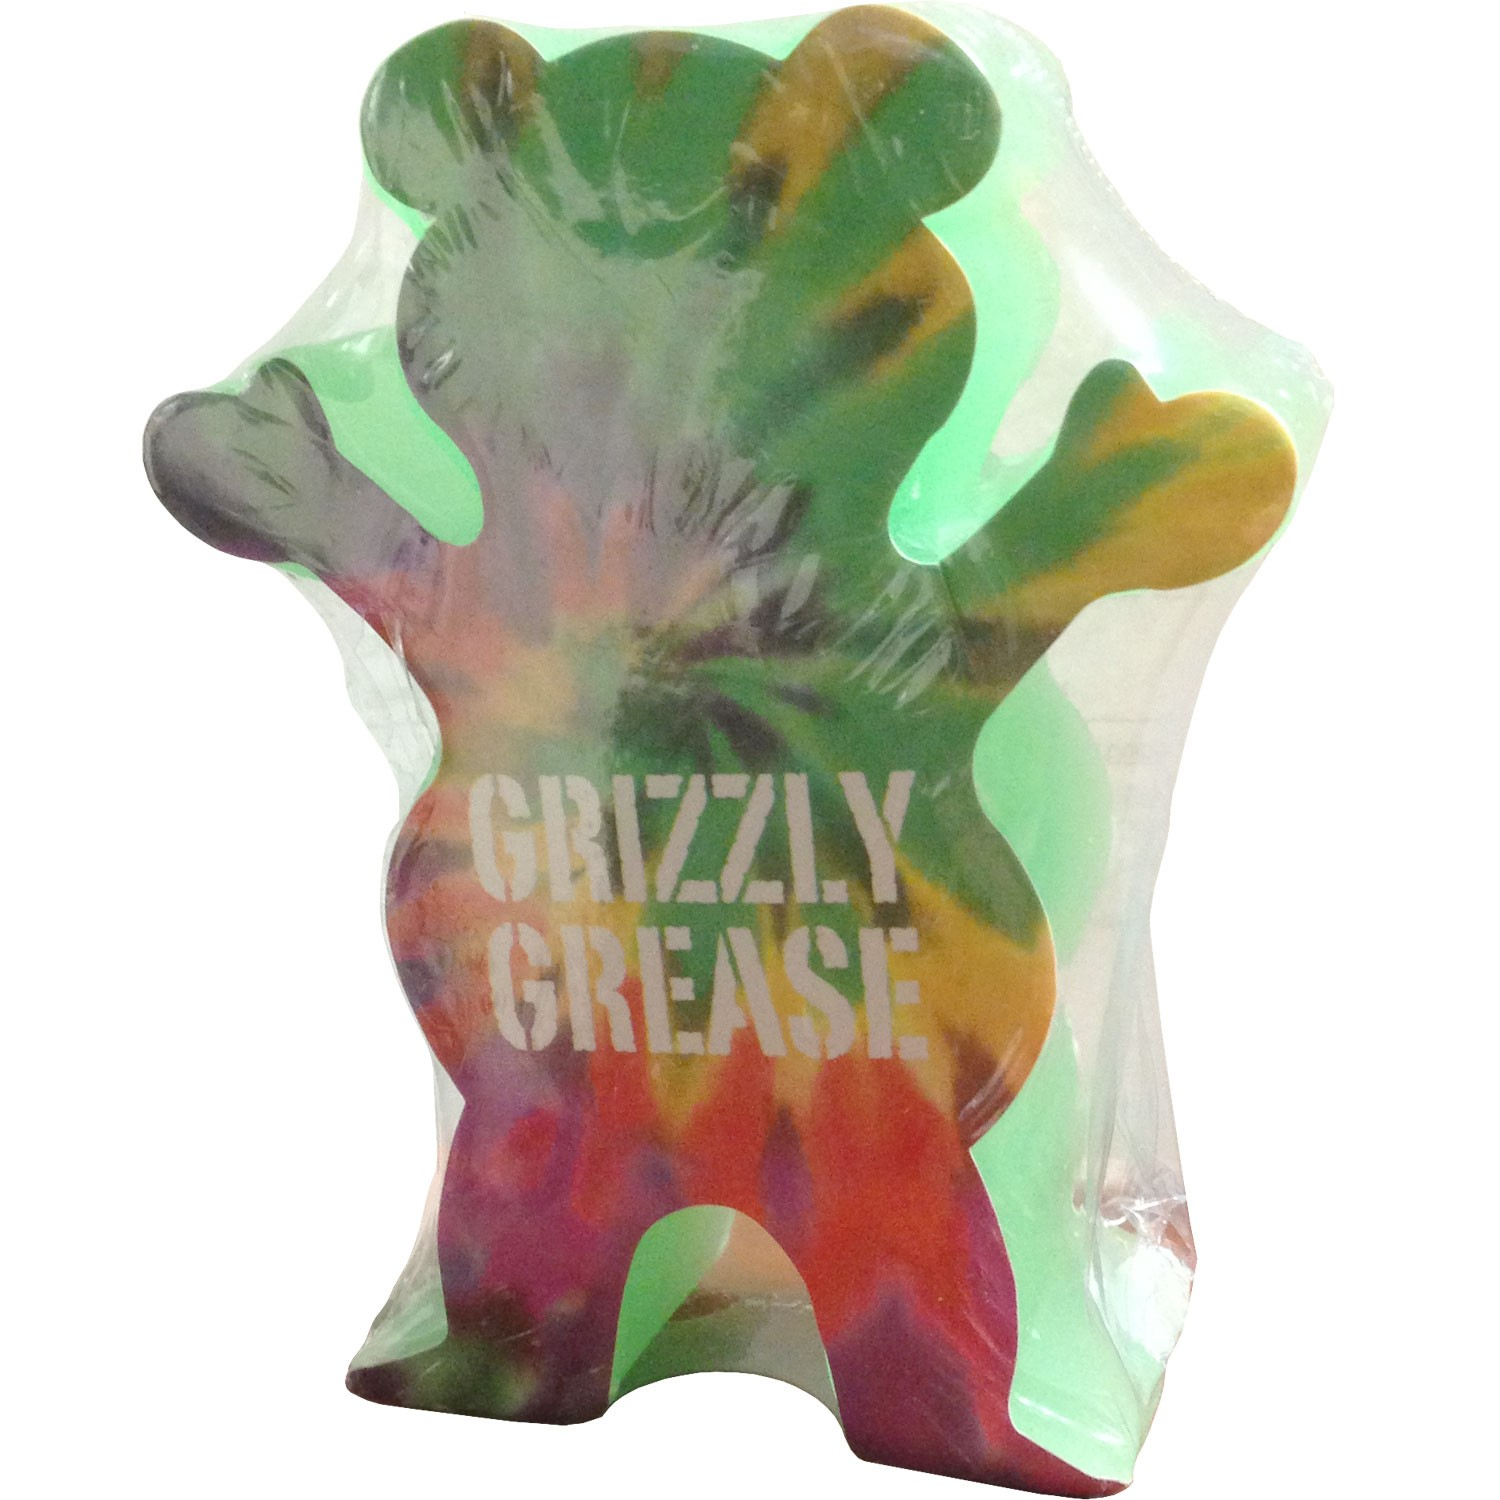 Grizzly Grease Wax 2014 - Green